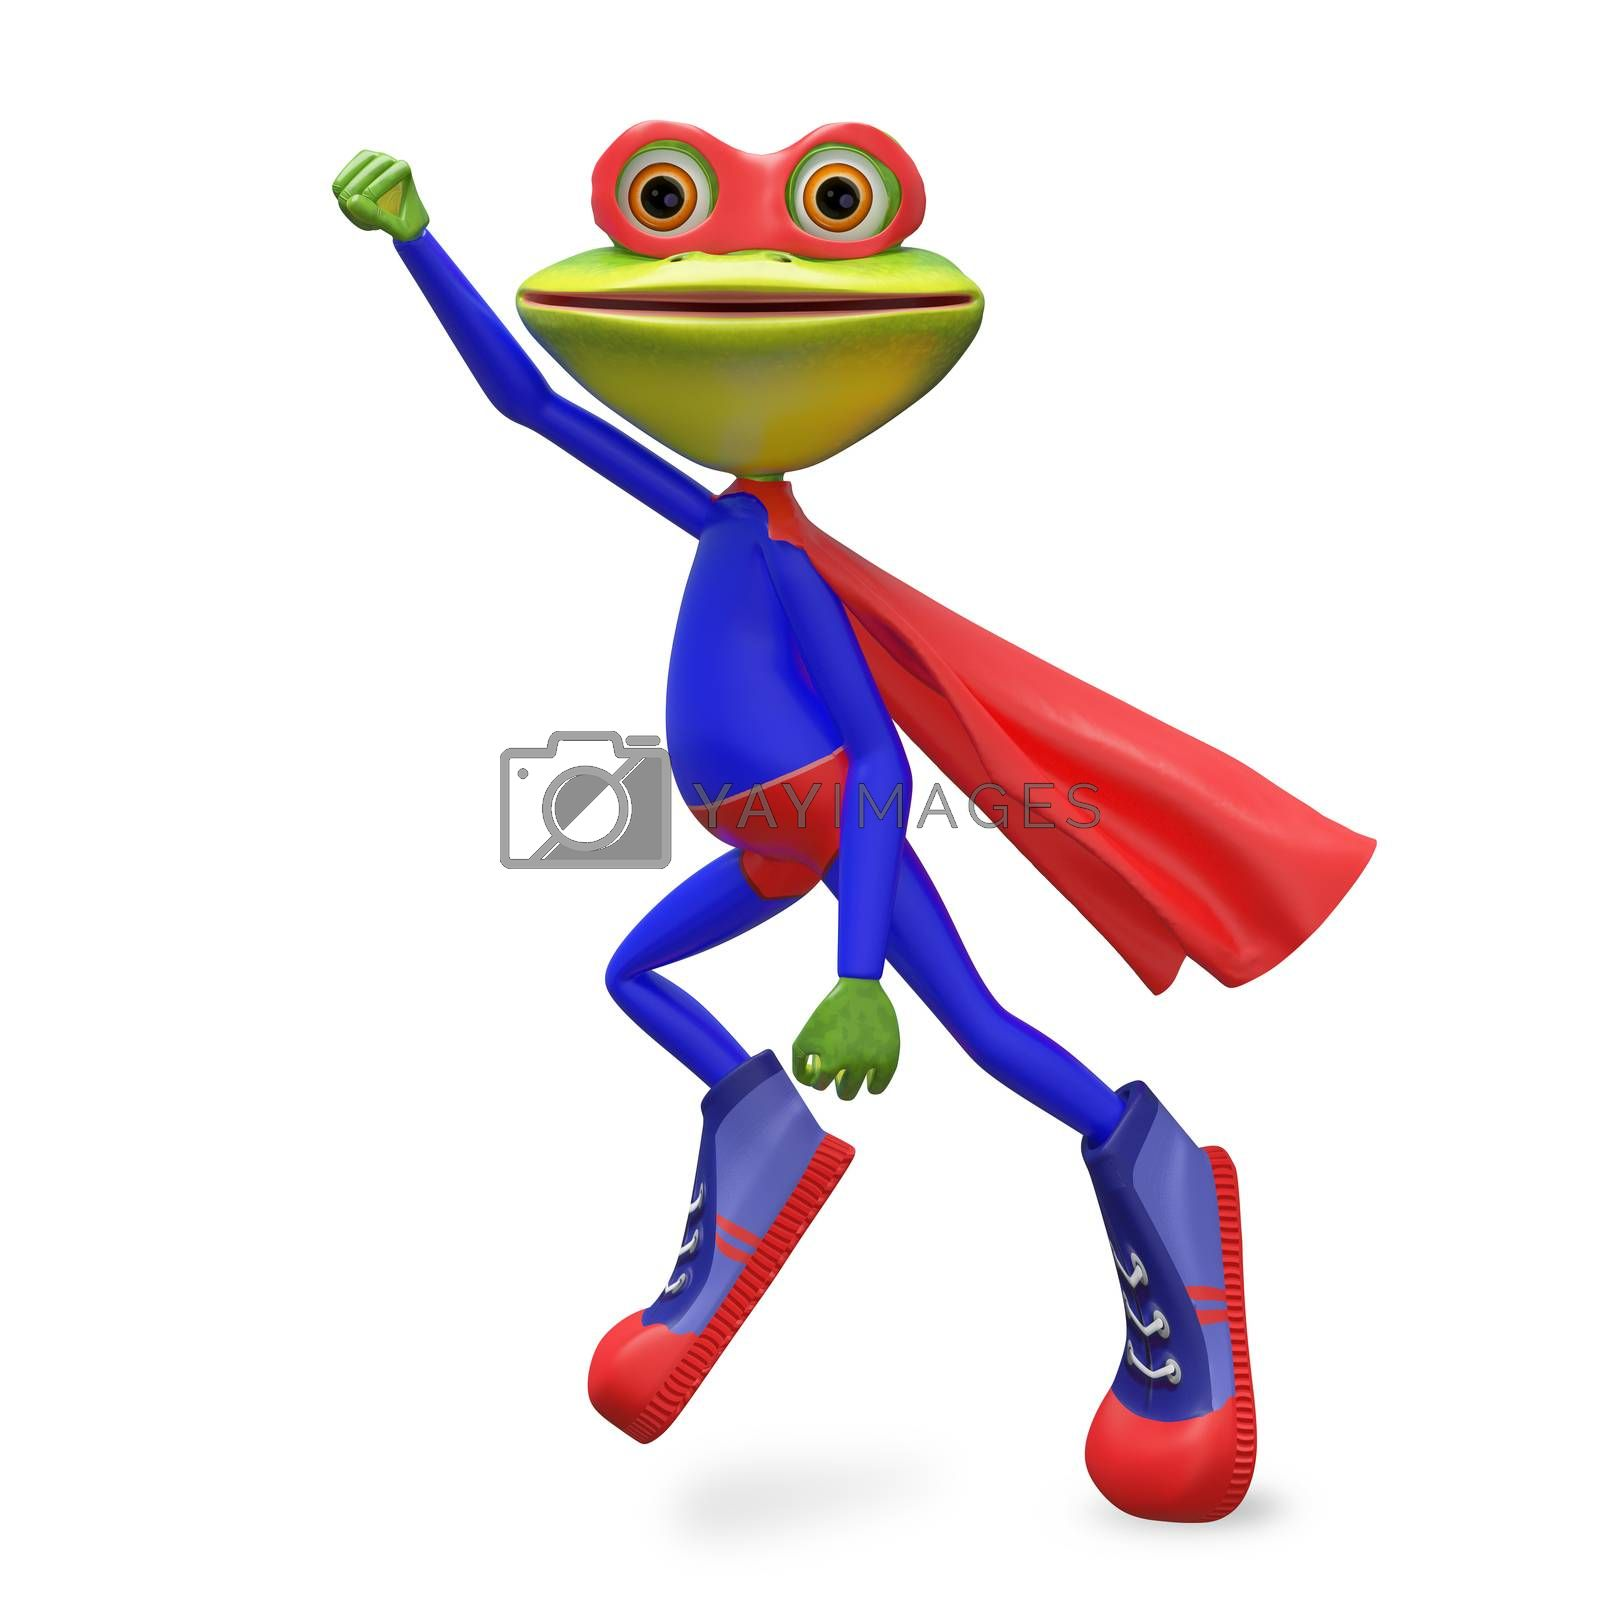 3D Illustration Merry Super Frog  on a White Background